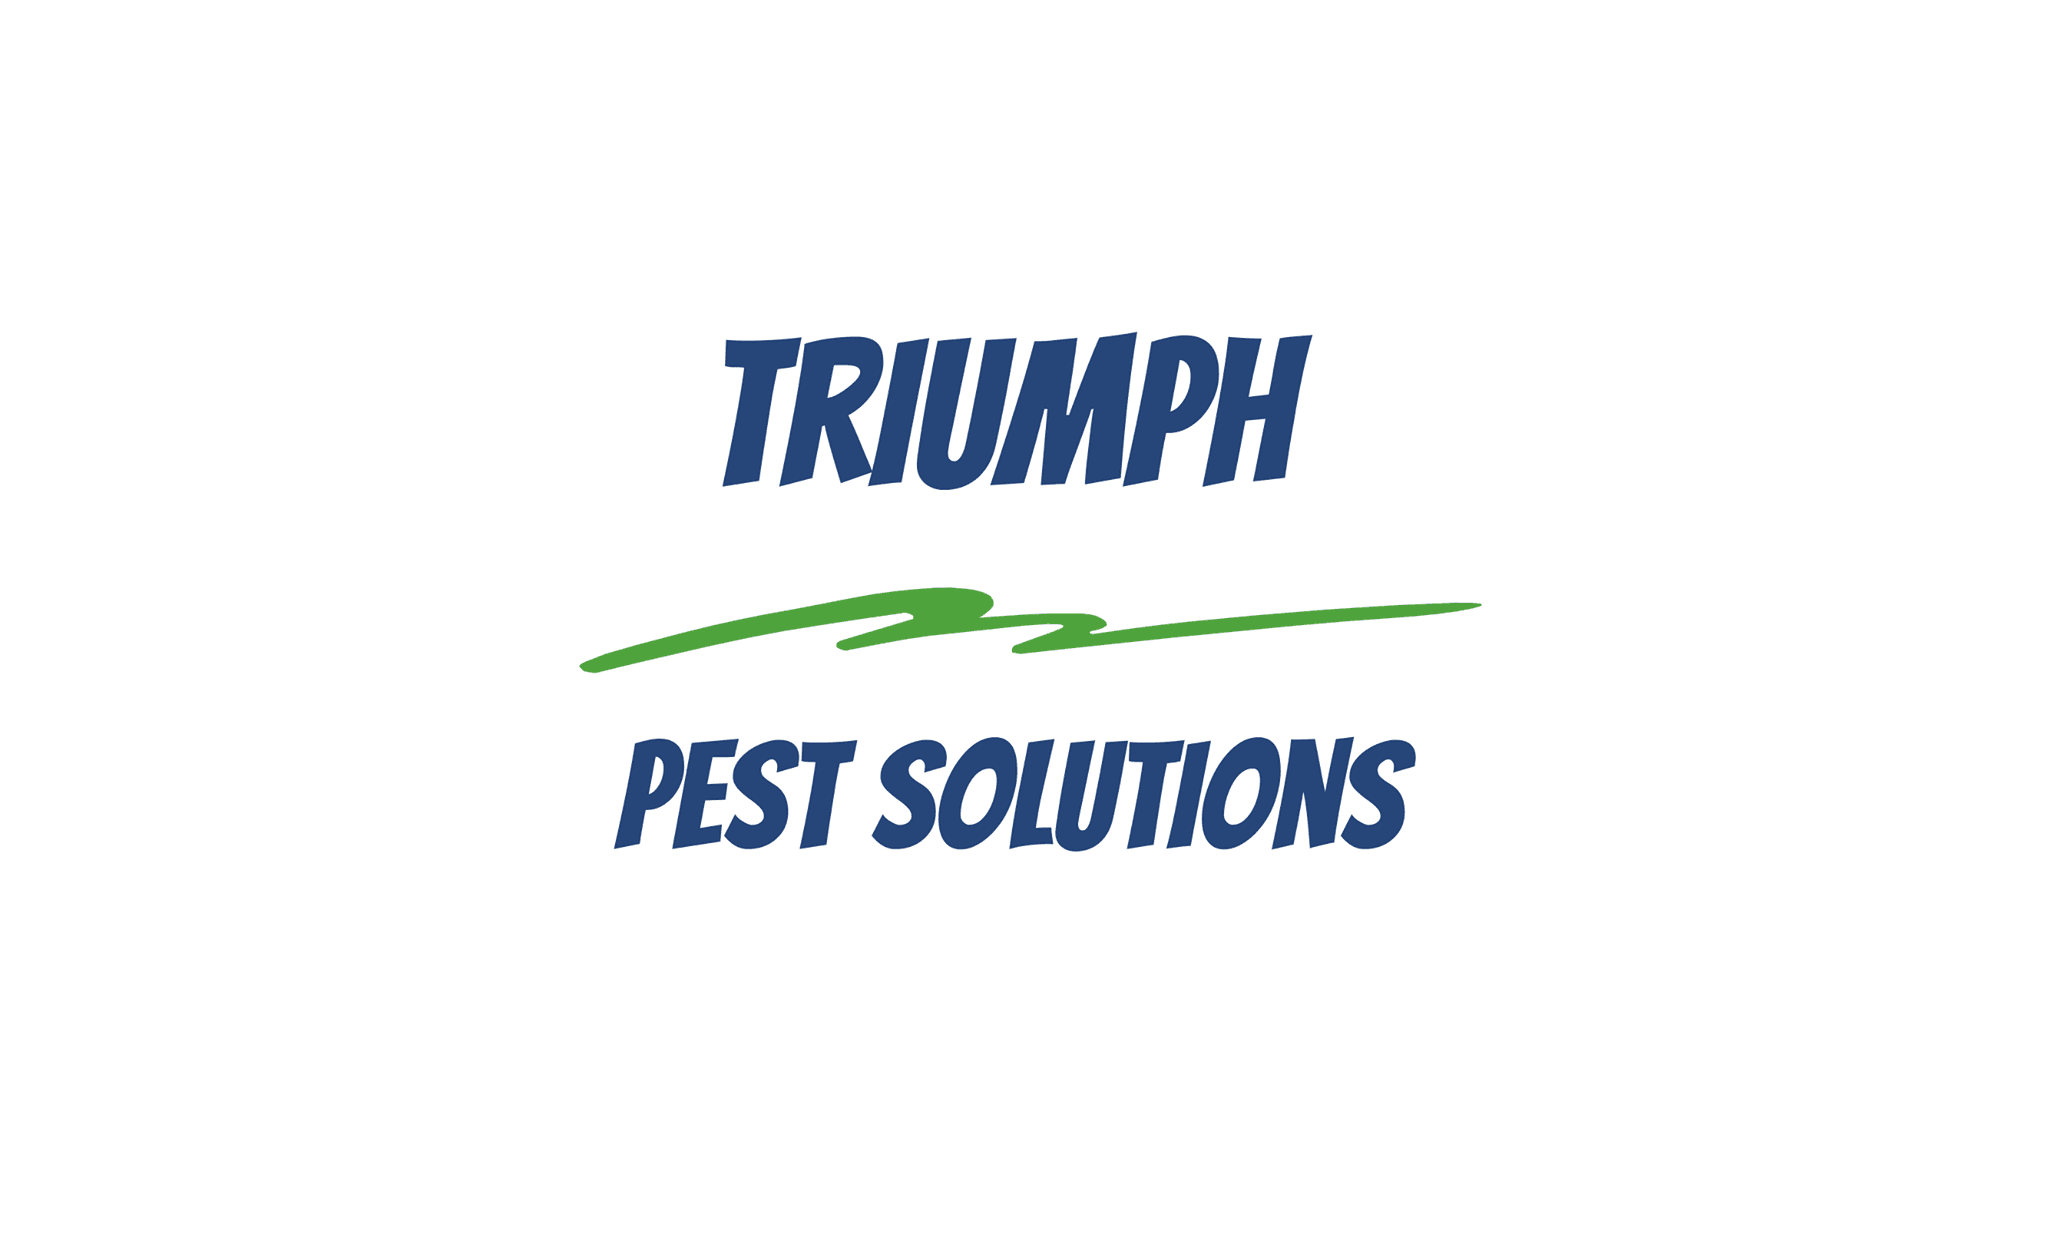 Triumph Pest Solutions